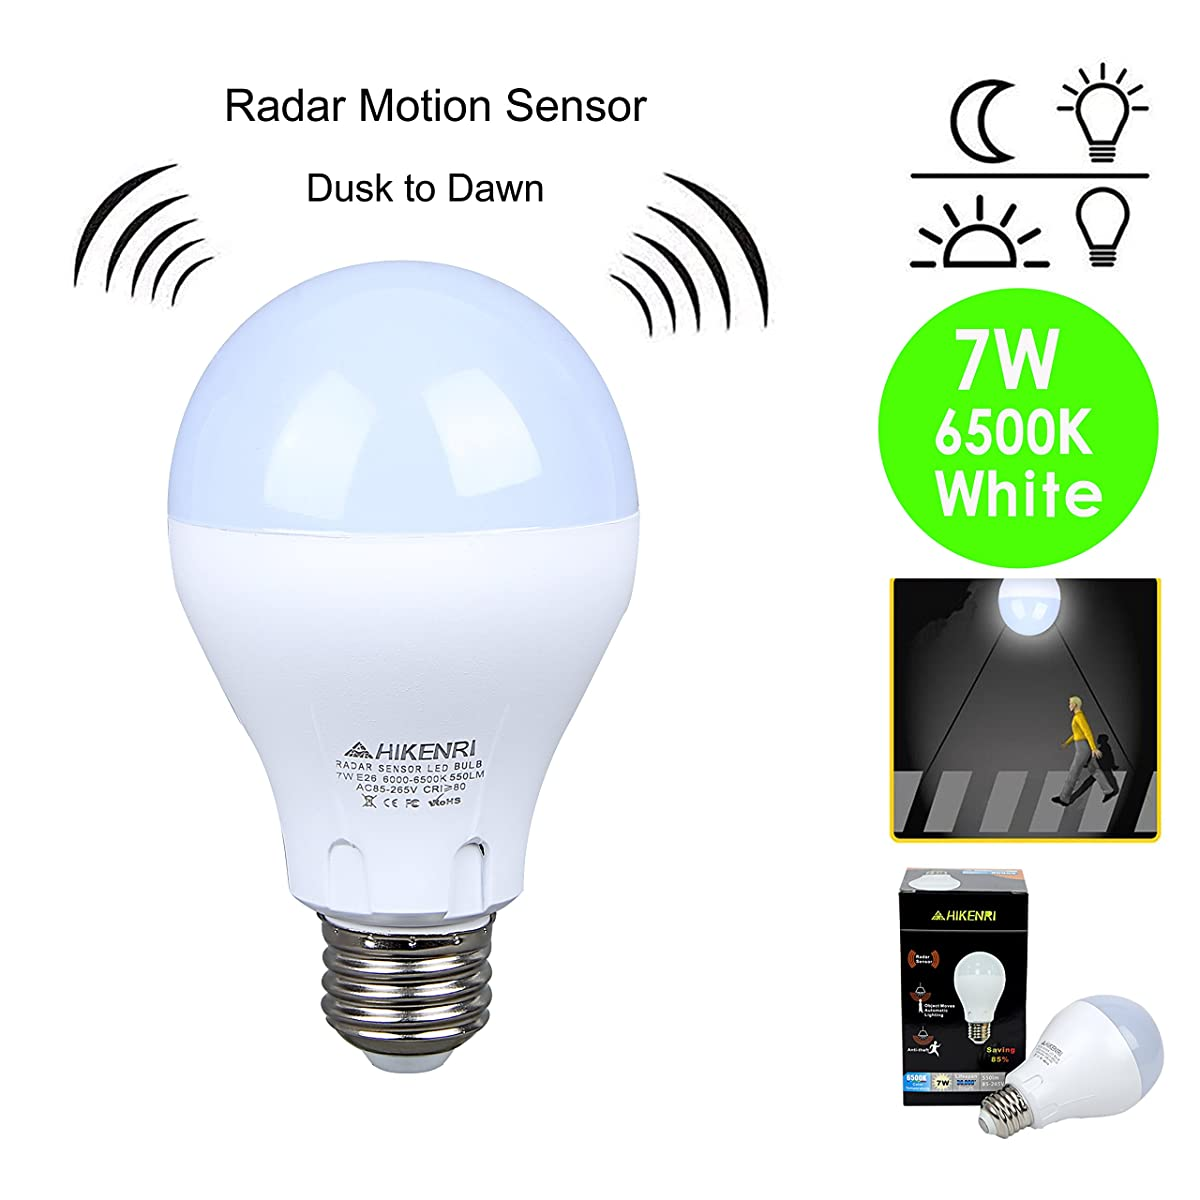 Motion Sensor Light Bulb 7W(60W Equivalent) Radar Smart Bulb Dusk to Dawn LED Motion Sensor Light Bulbs E26 Base Indoor Sensor Night Lights Soft White 6500K Outdoor Motion Sensor Bulb Auto On/Off